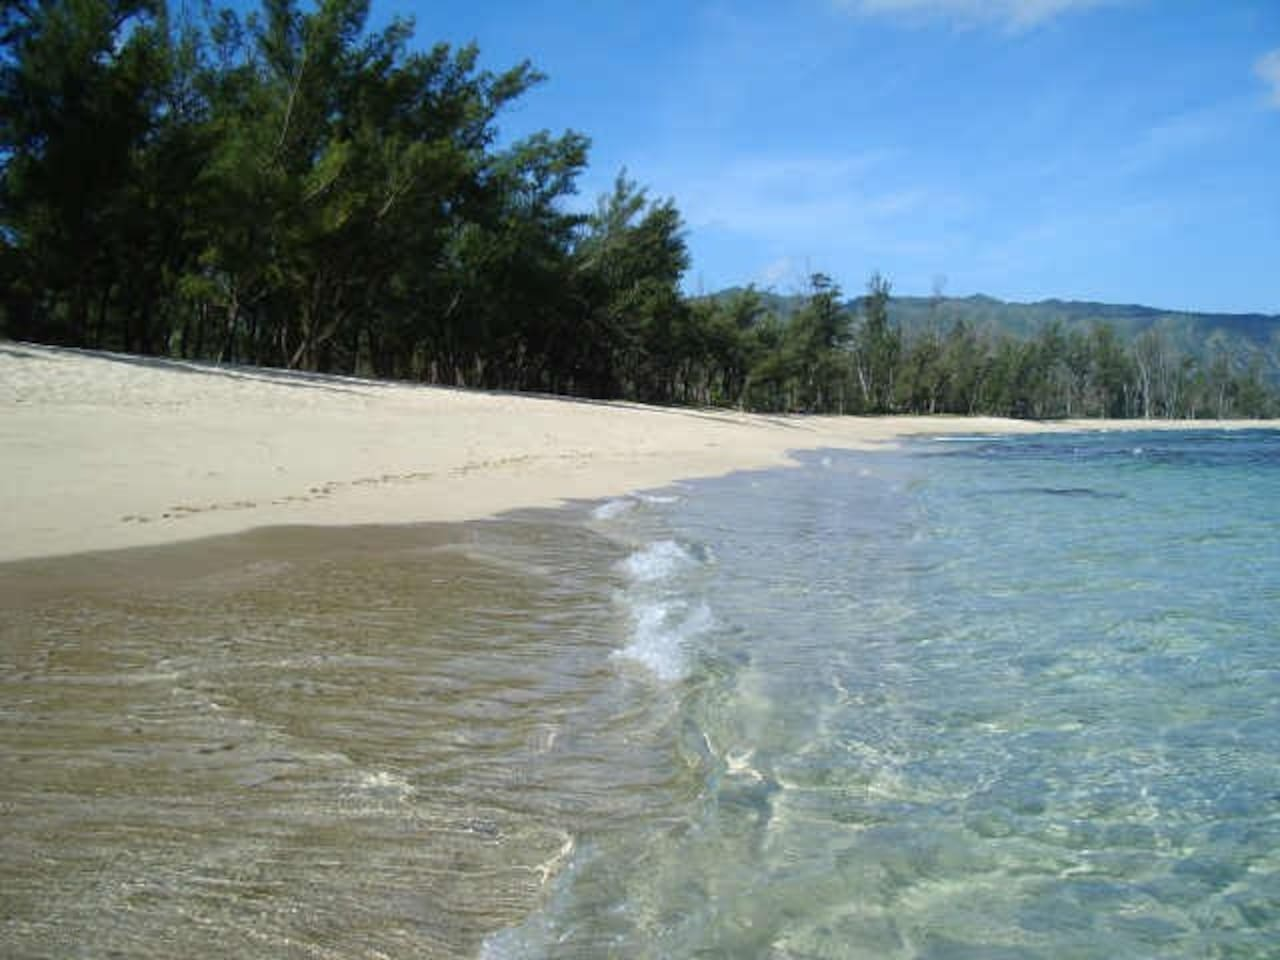 North Shore Mokuleia. The one of a kind almost private beach below the ranch